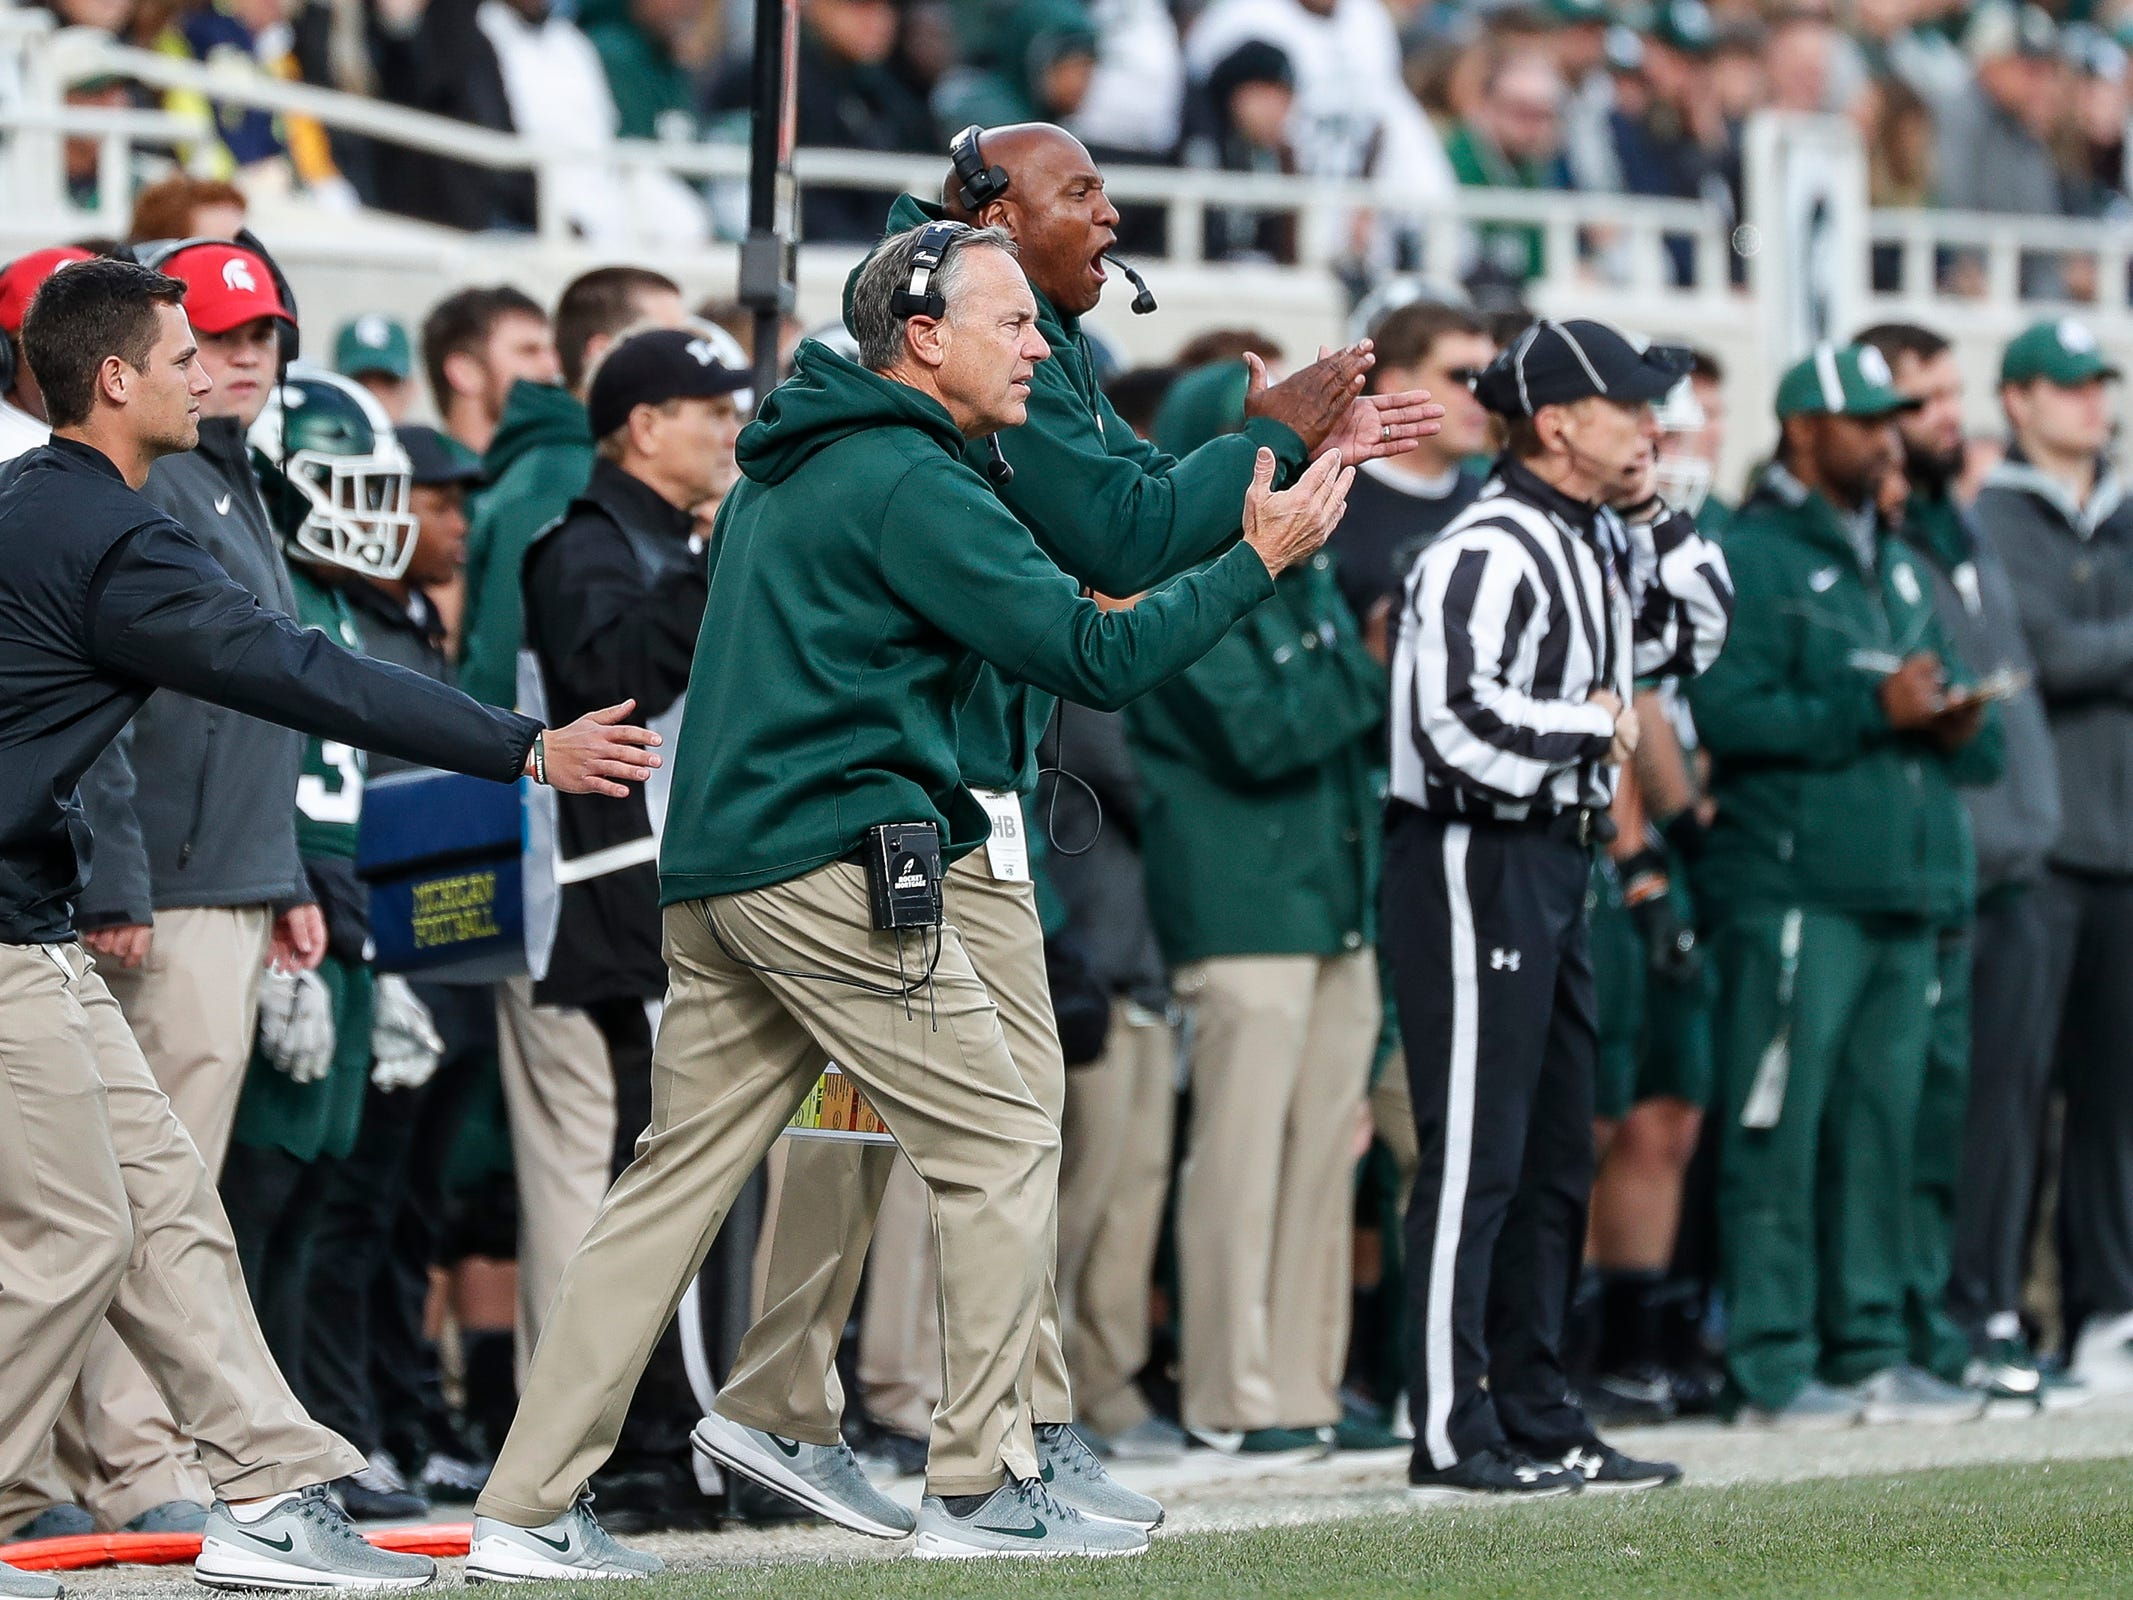 Michigan State coach Mark Dantonio watches a play against Michigan during the first half at Spartan Stadium on Saturday, Oct. 20, 2018.